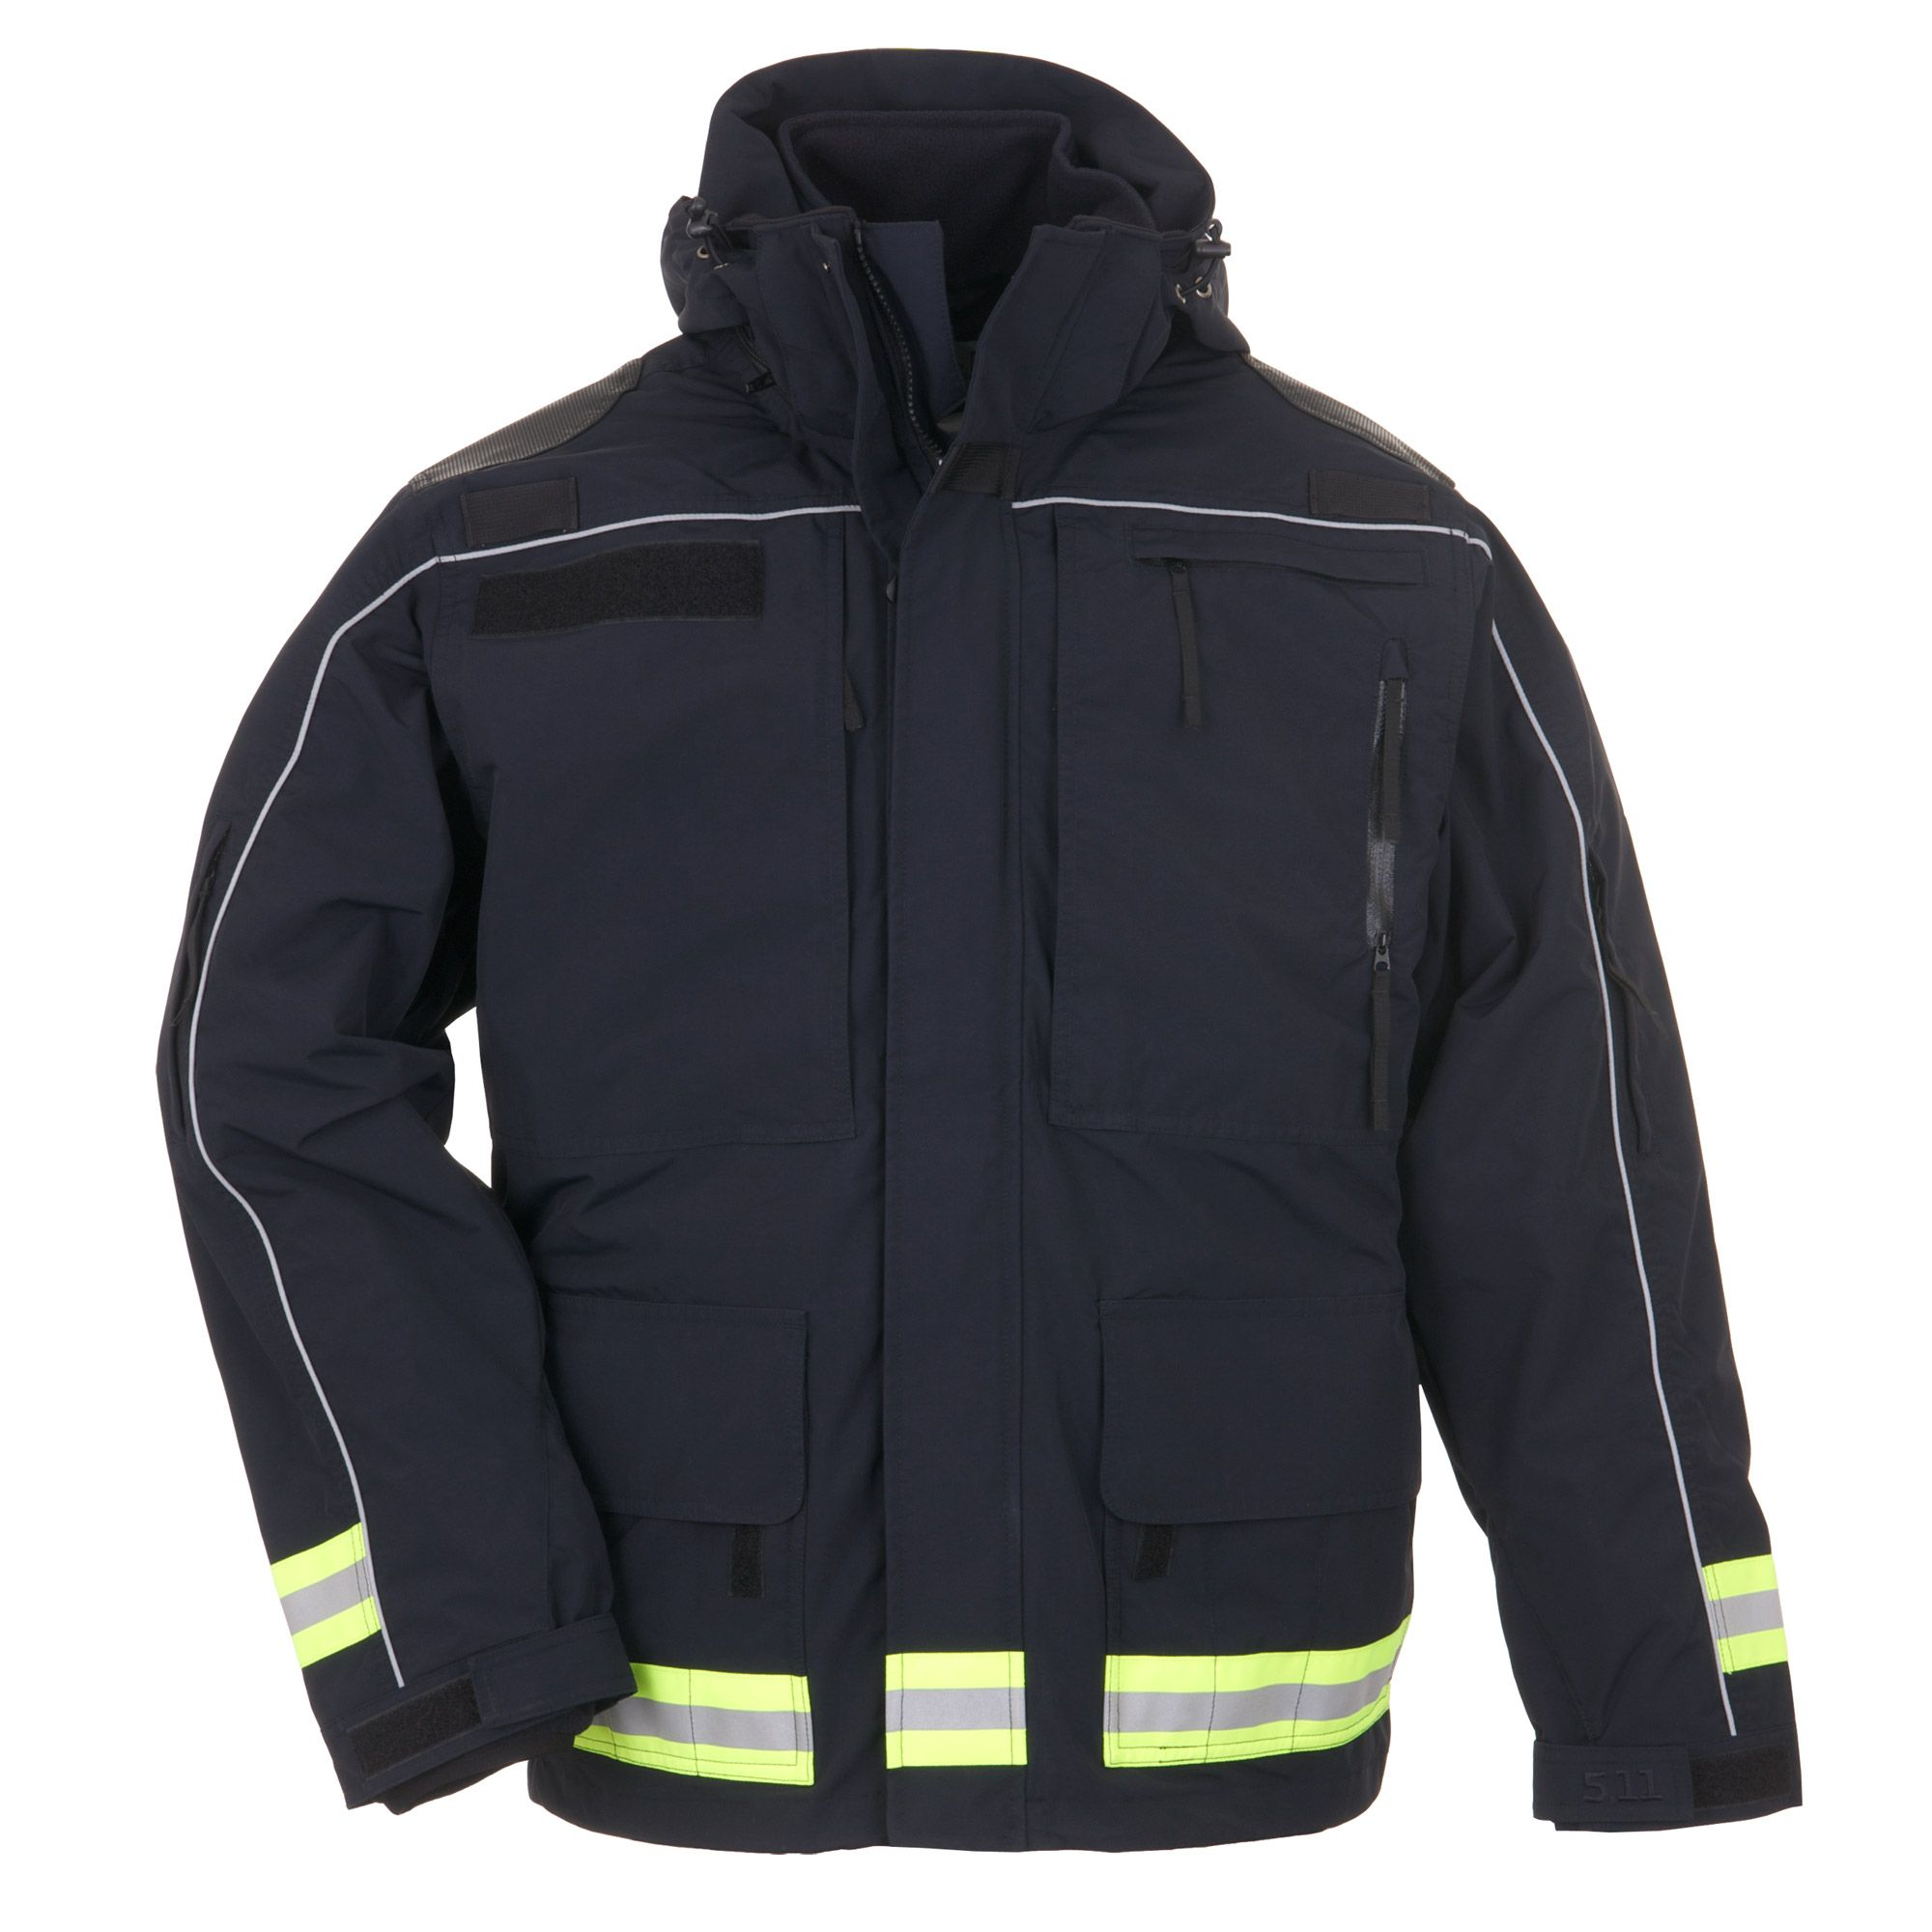 5.11 Tactical First Responder Women's Parka | Official 5.11 Site